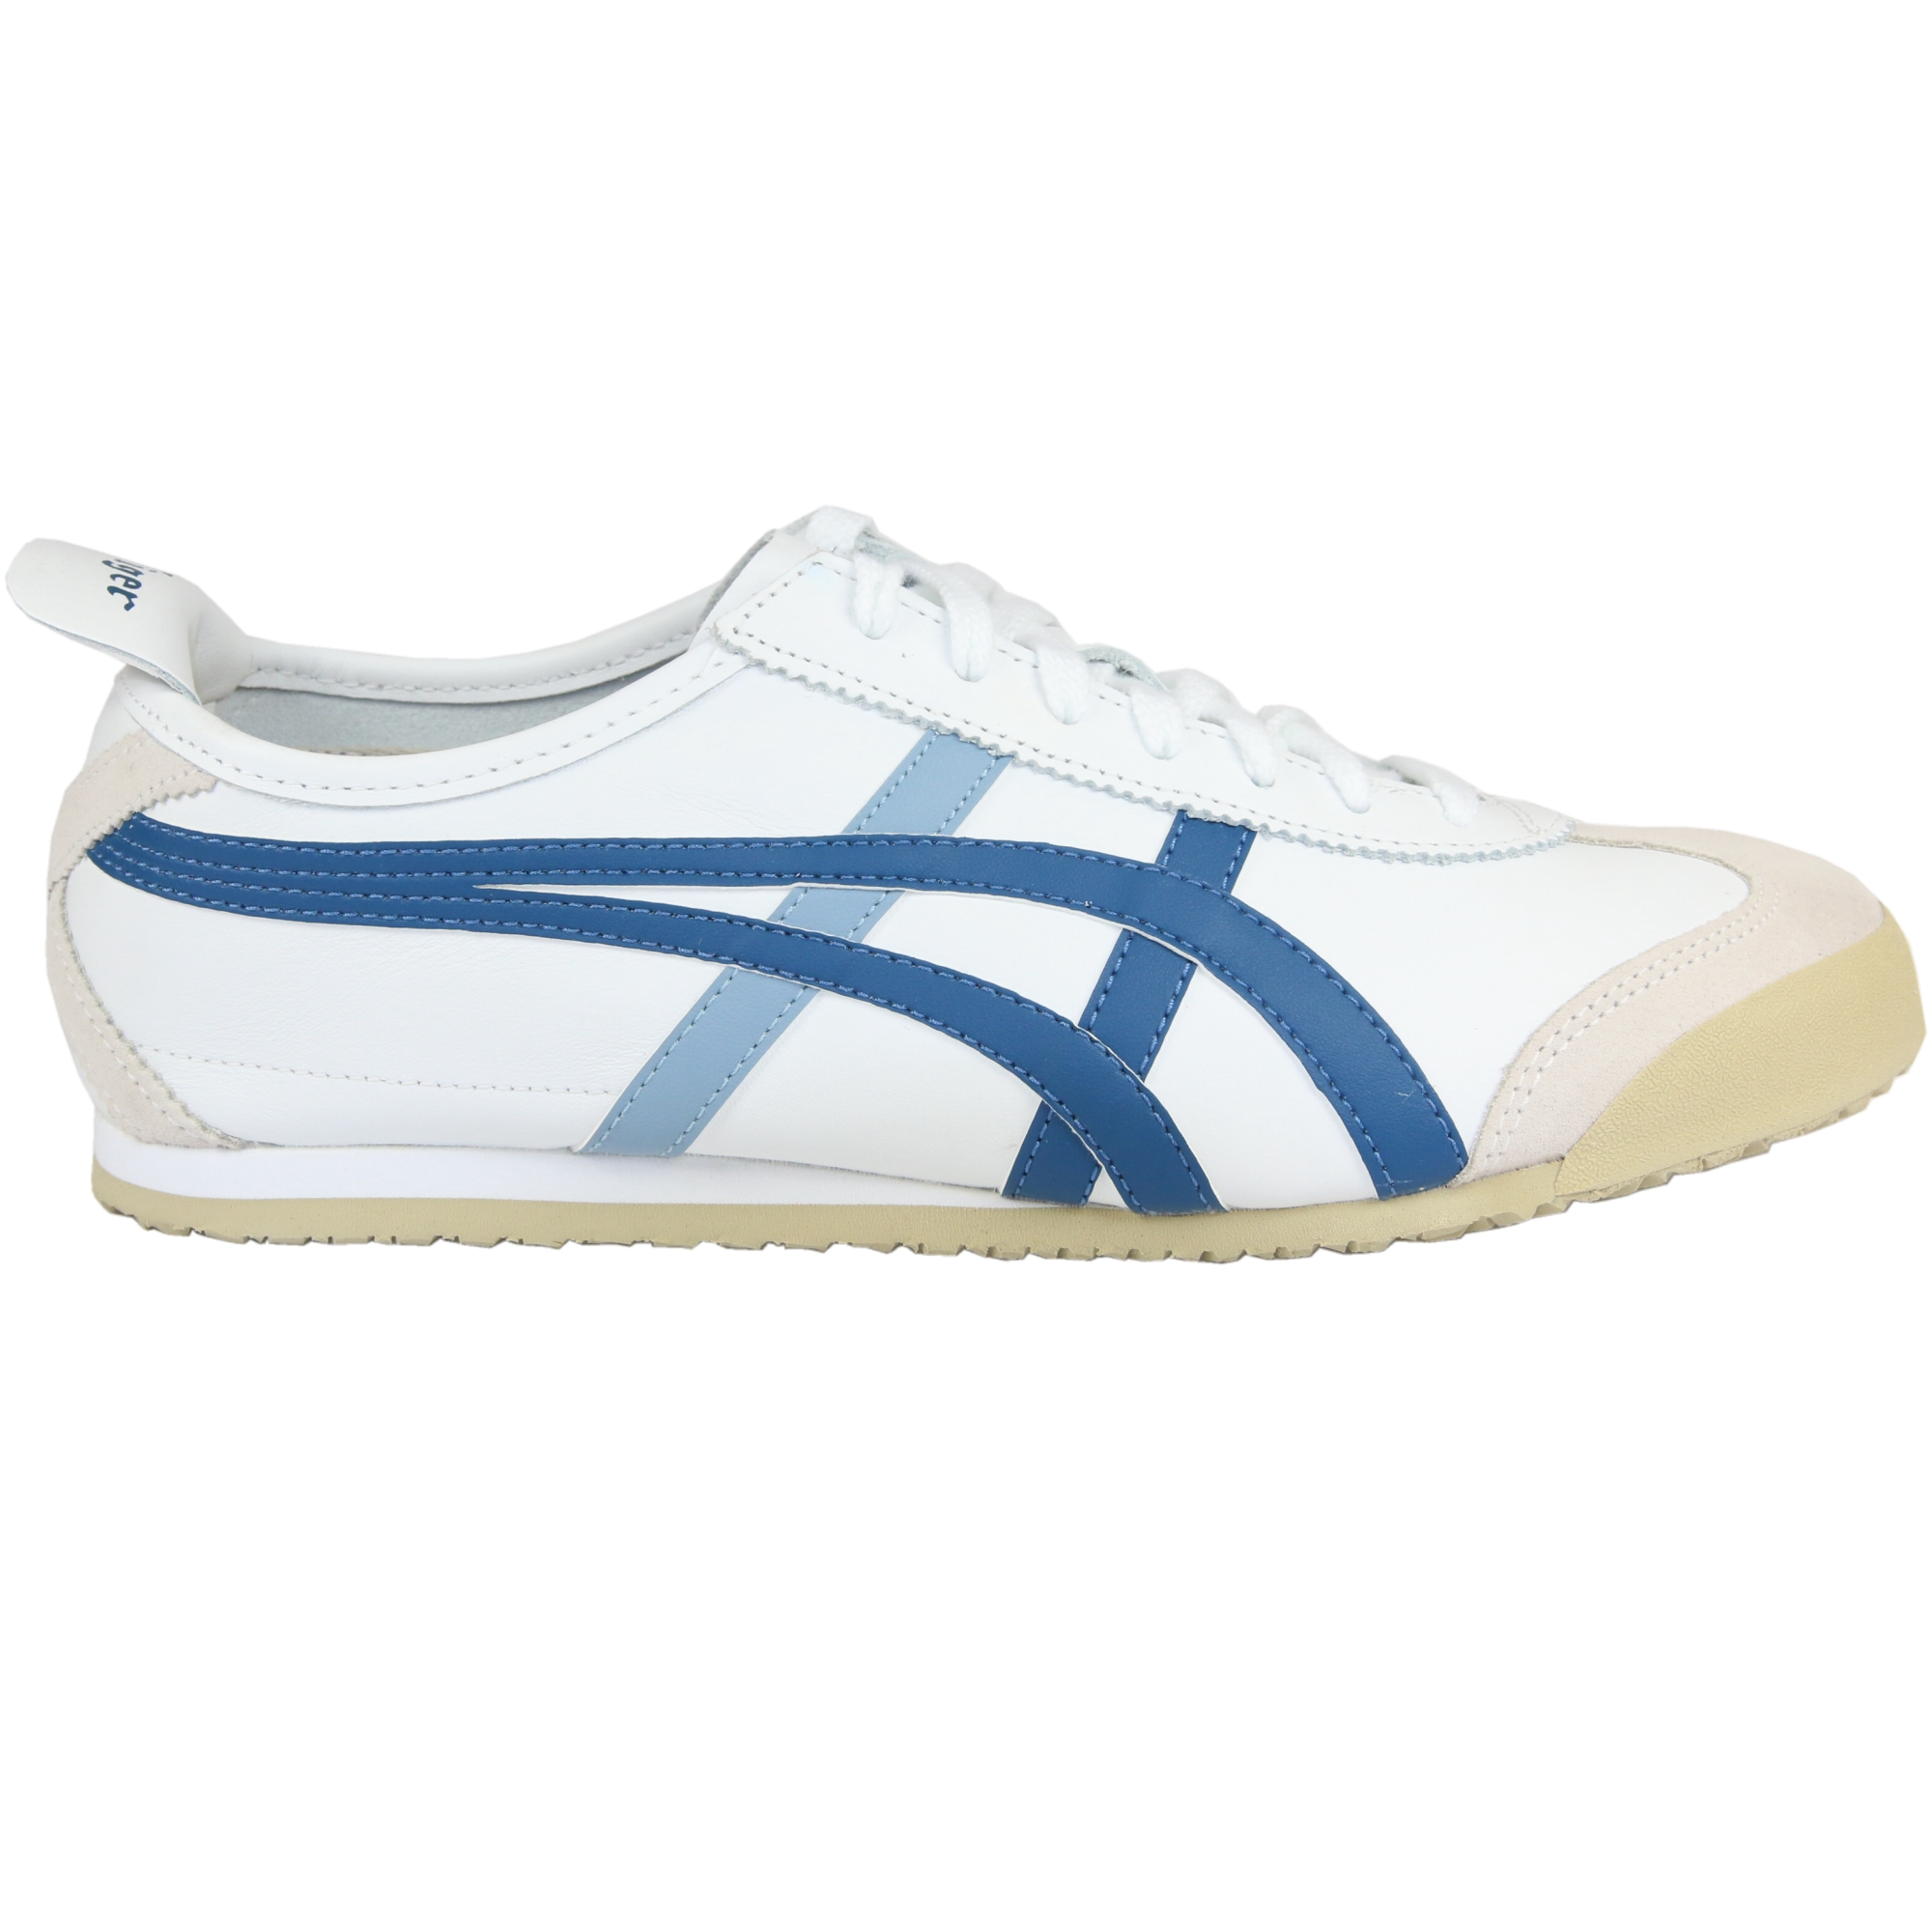 asics onitsuka tiger mexico 66 schuhe turnschuhe sneaker damen herren ebay. Black Bedroom Furniture Sets. Home Design Ideas